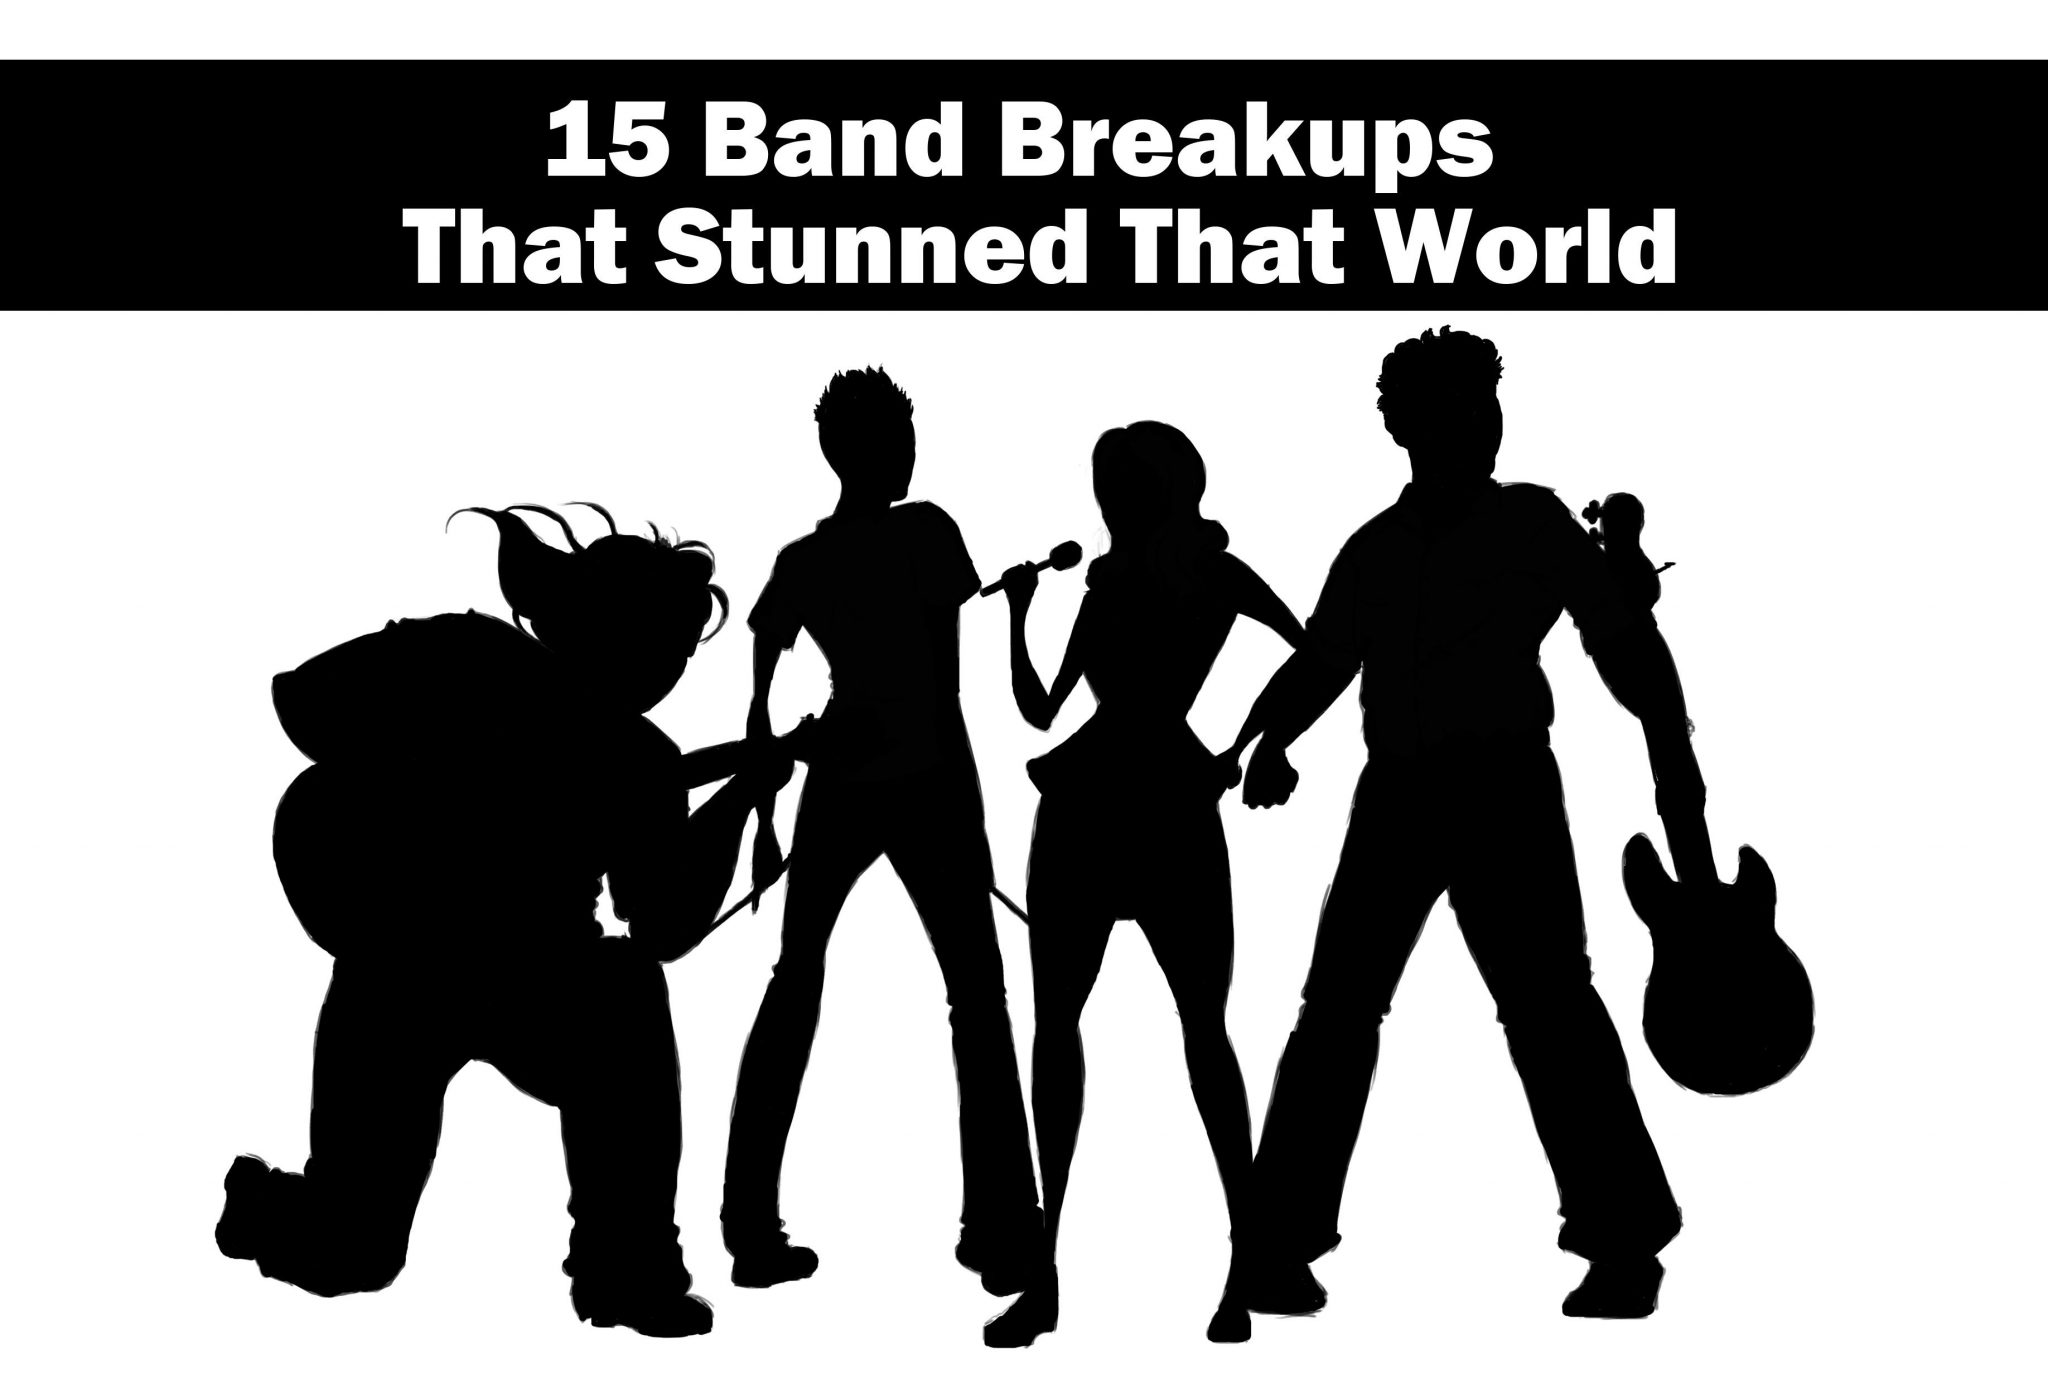 15 Band Breakups That Stunned That World